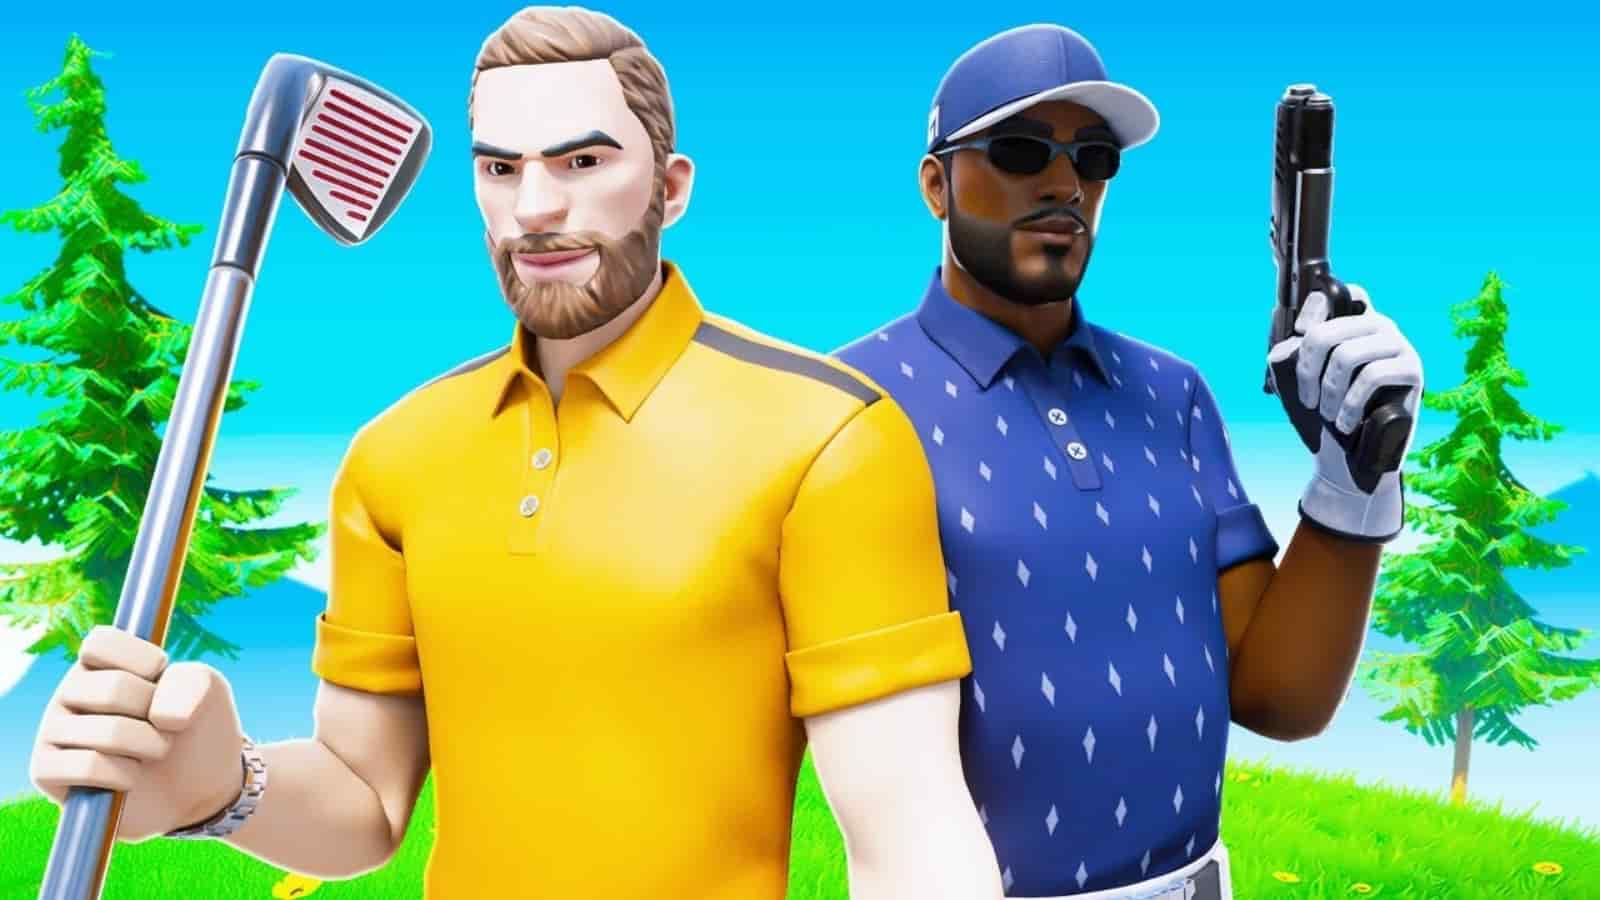 Fortnite Fearless Fairway Bundle: New Outfit Price, and Other Details